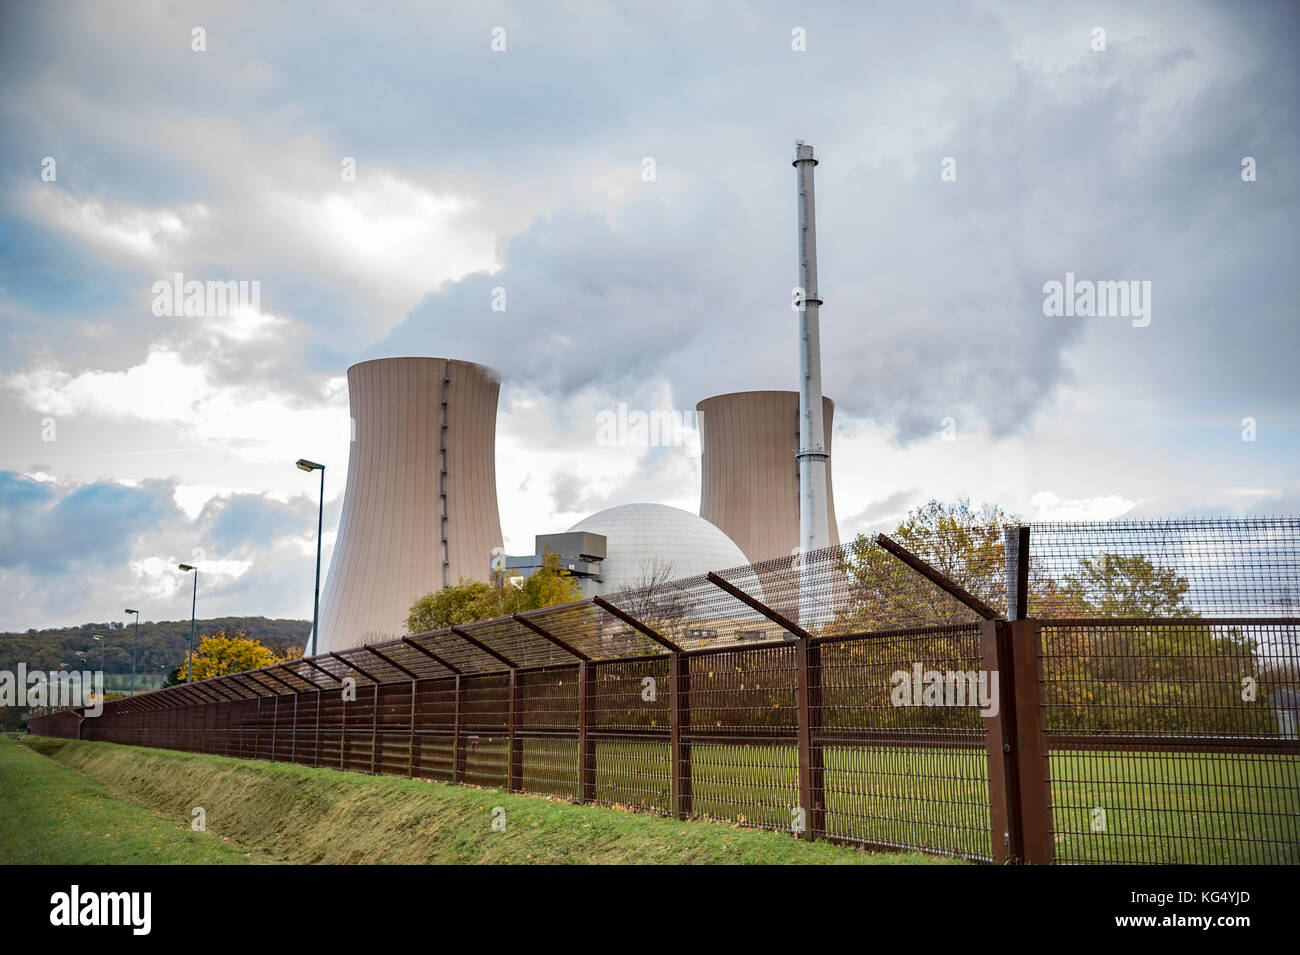 energy production with nuclear power - Stock Image